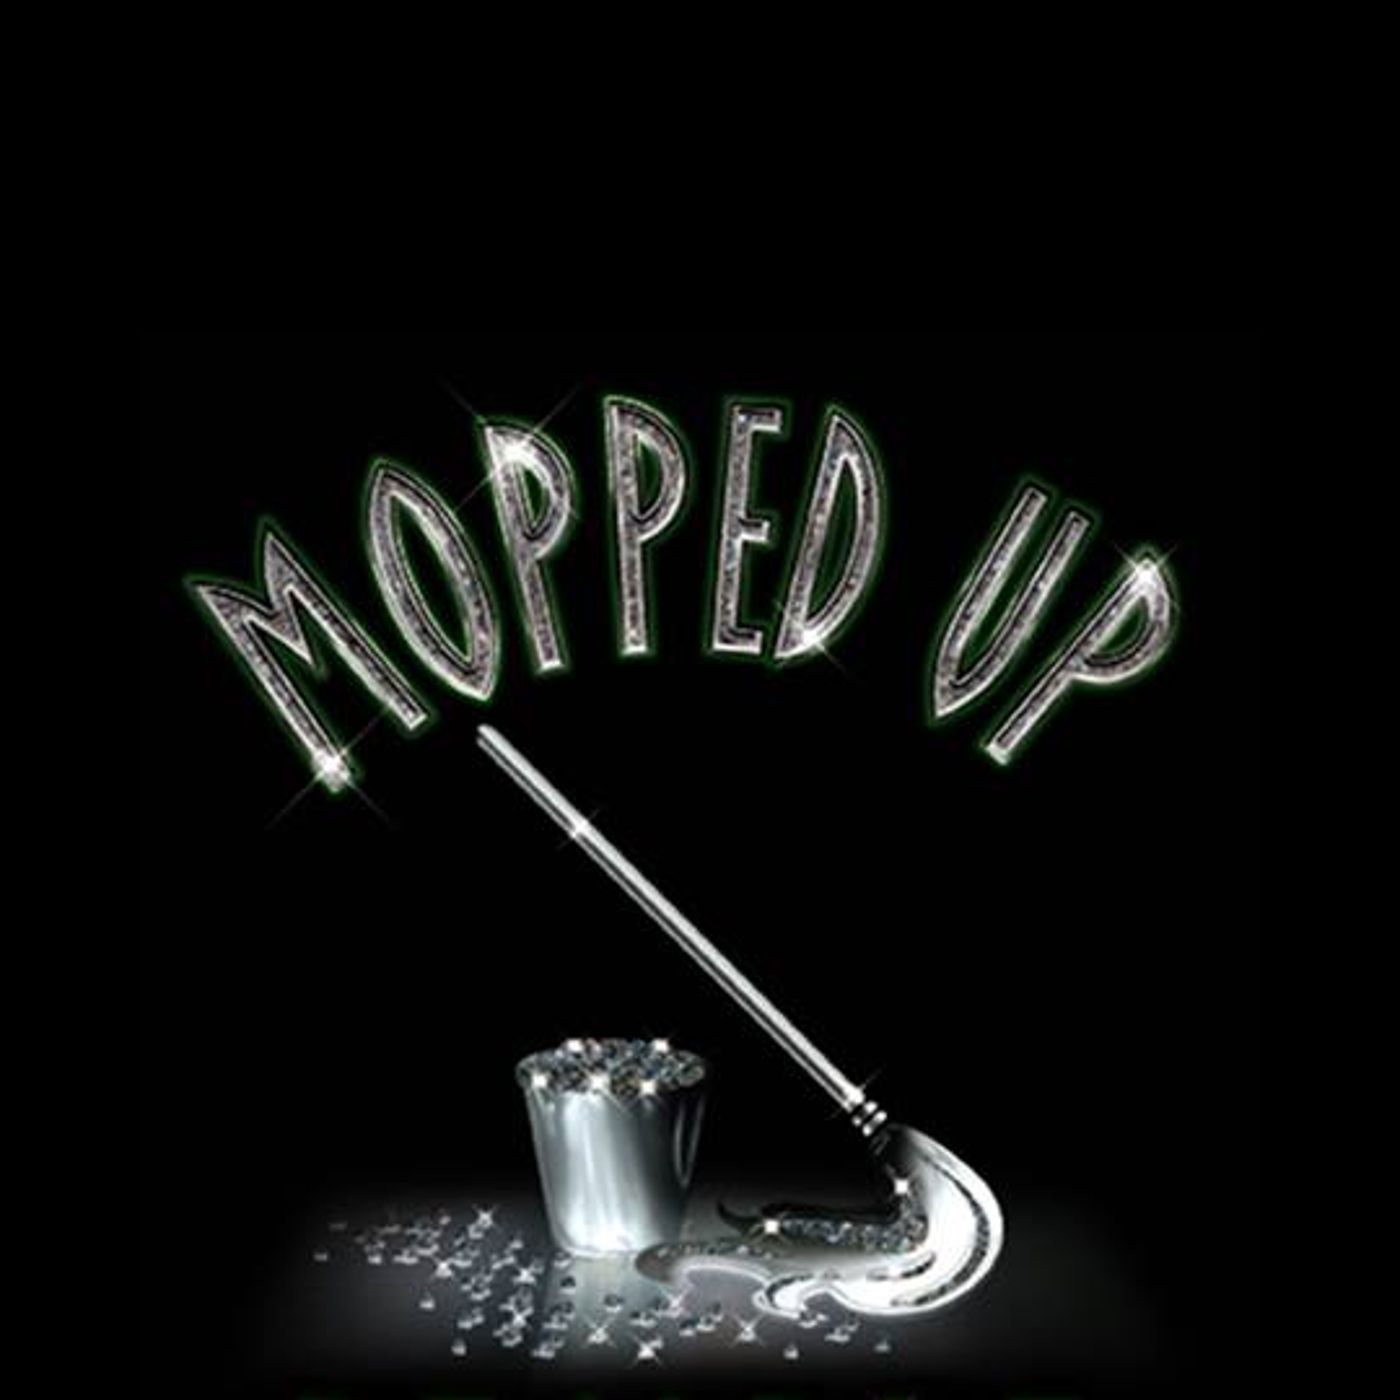 Mopped Up Ent. Live